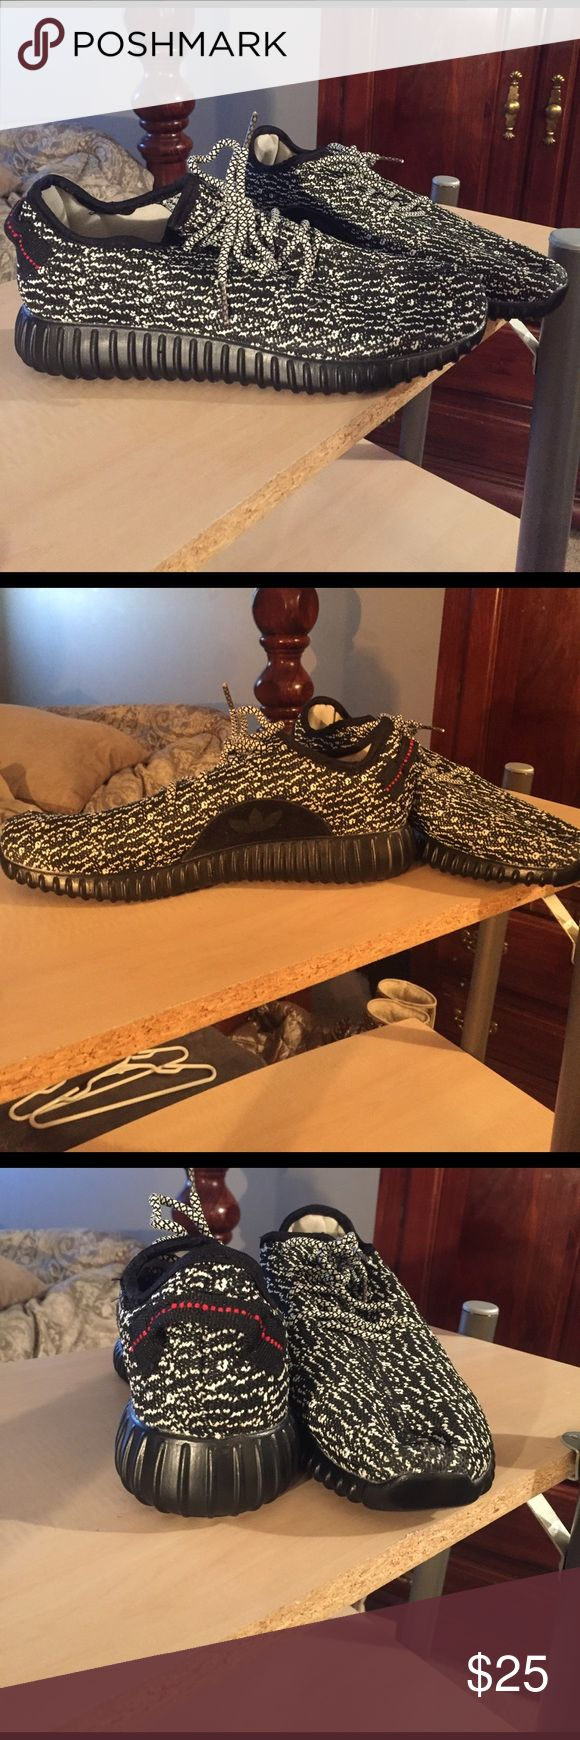 Yeezy Boosts Mimic Yeezy Boost never worn, in perfect condition & could never tell it's a mimic. Perfect for fashion, workout at a low cost Shoes Athletic Shoes